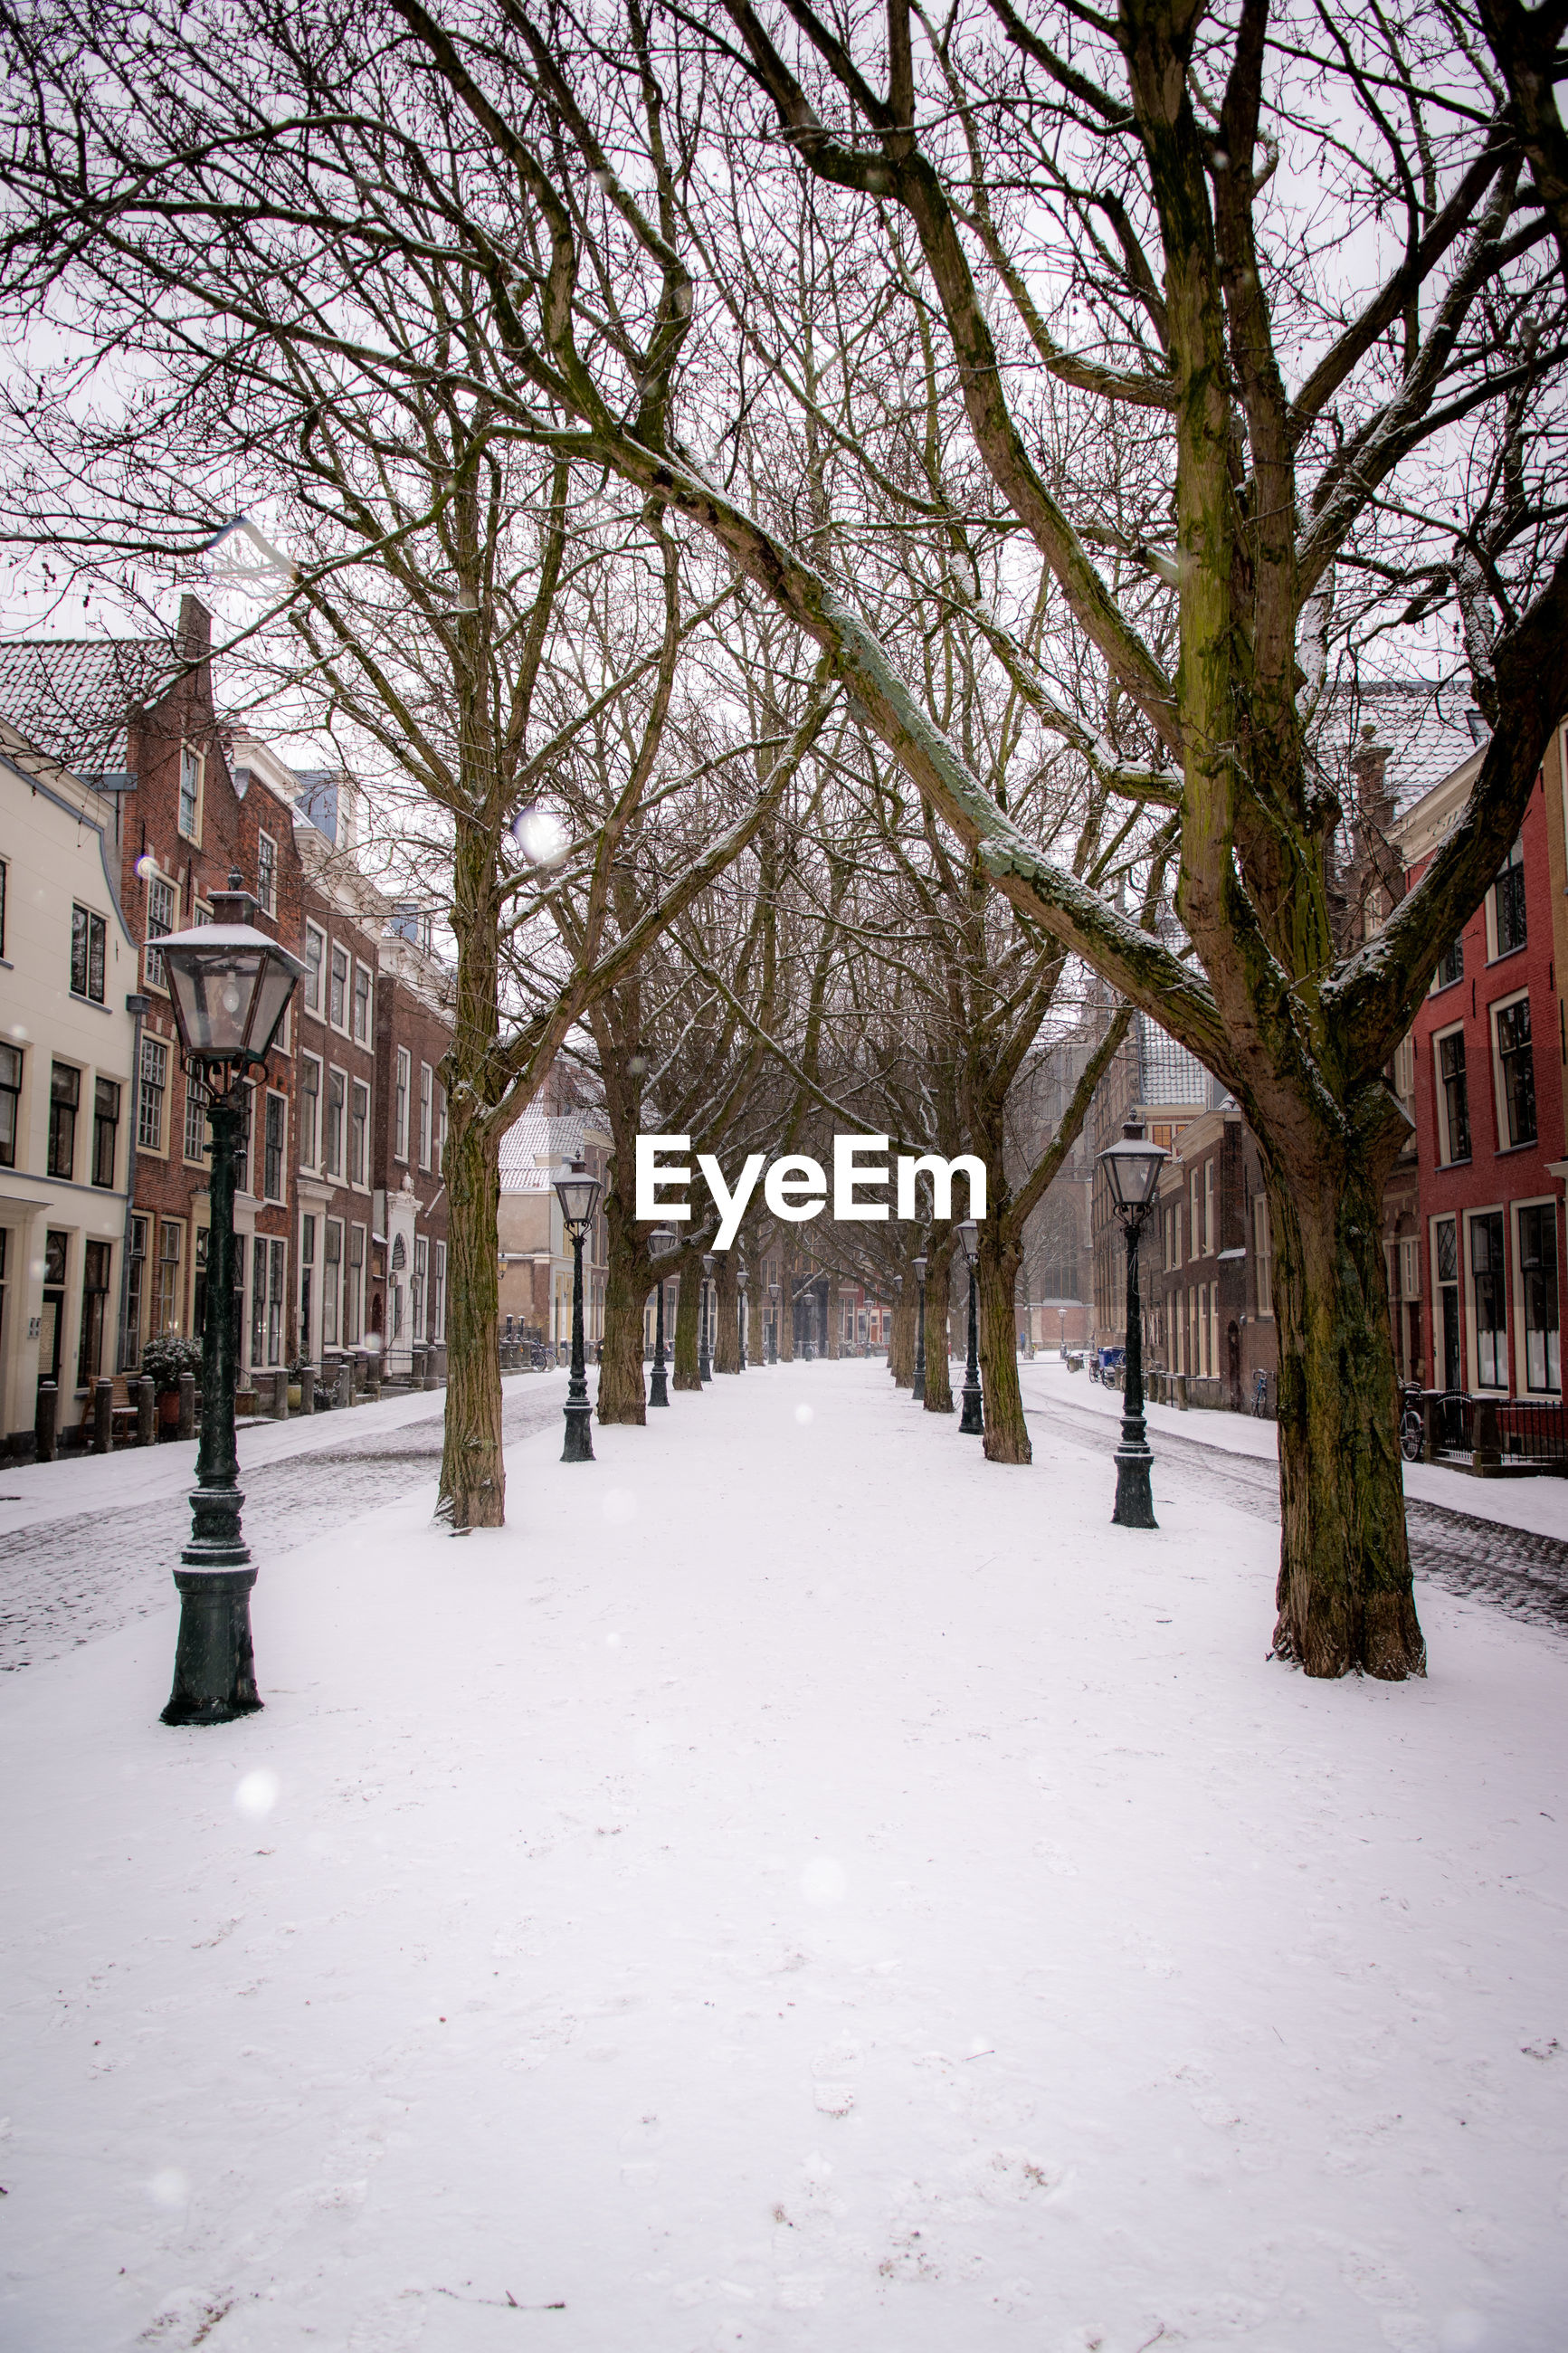 Snow covered footpath amidst trees and buildings during winter